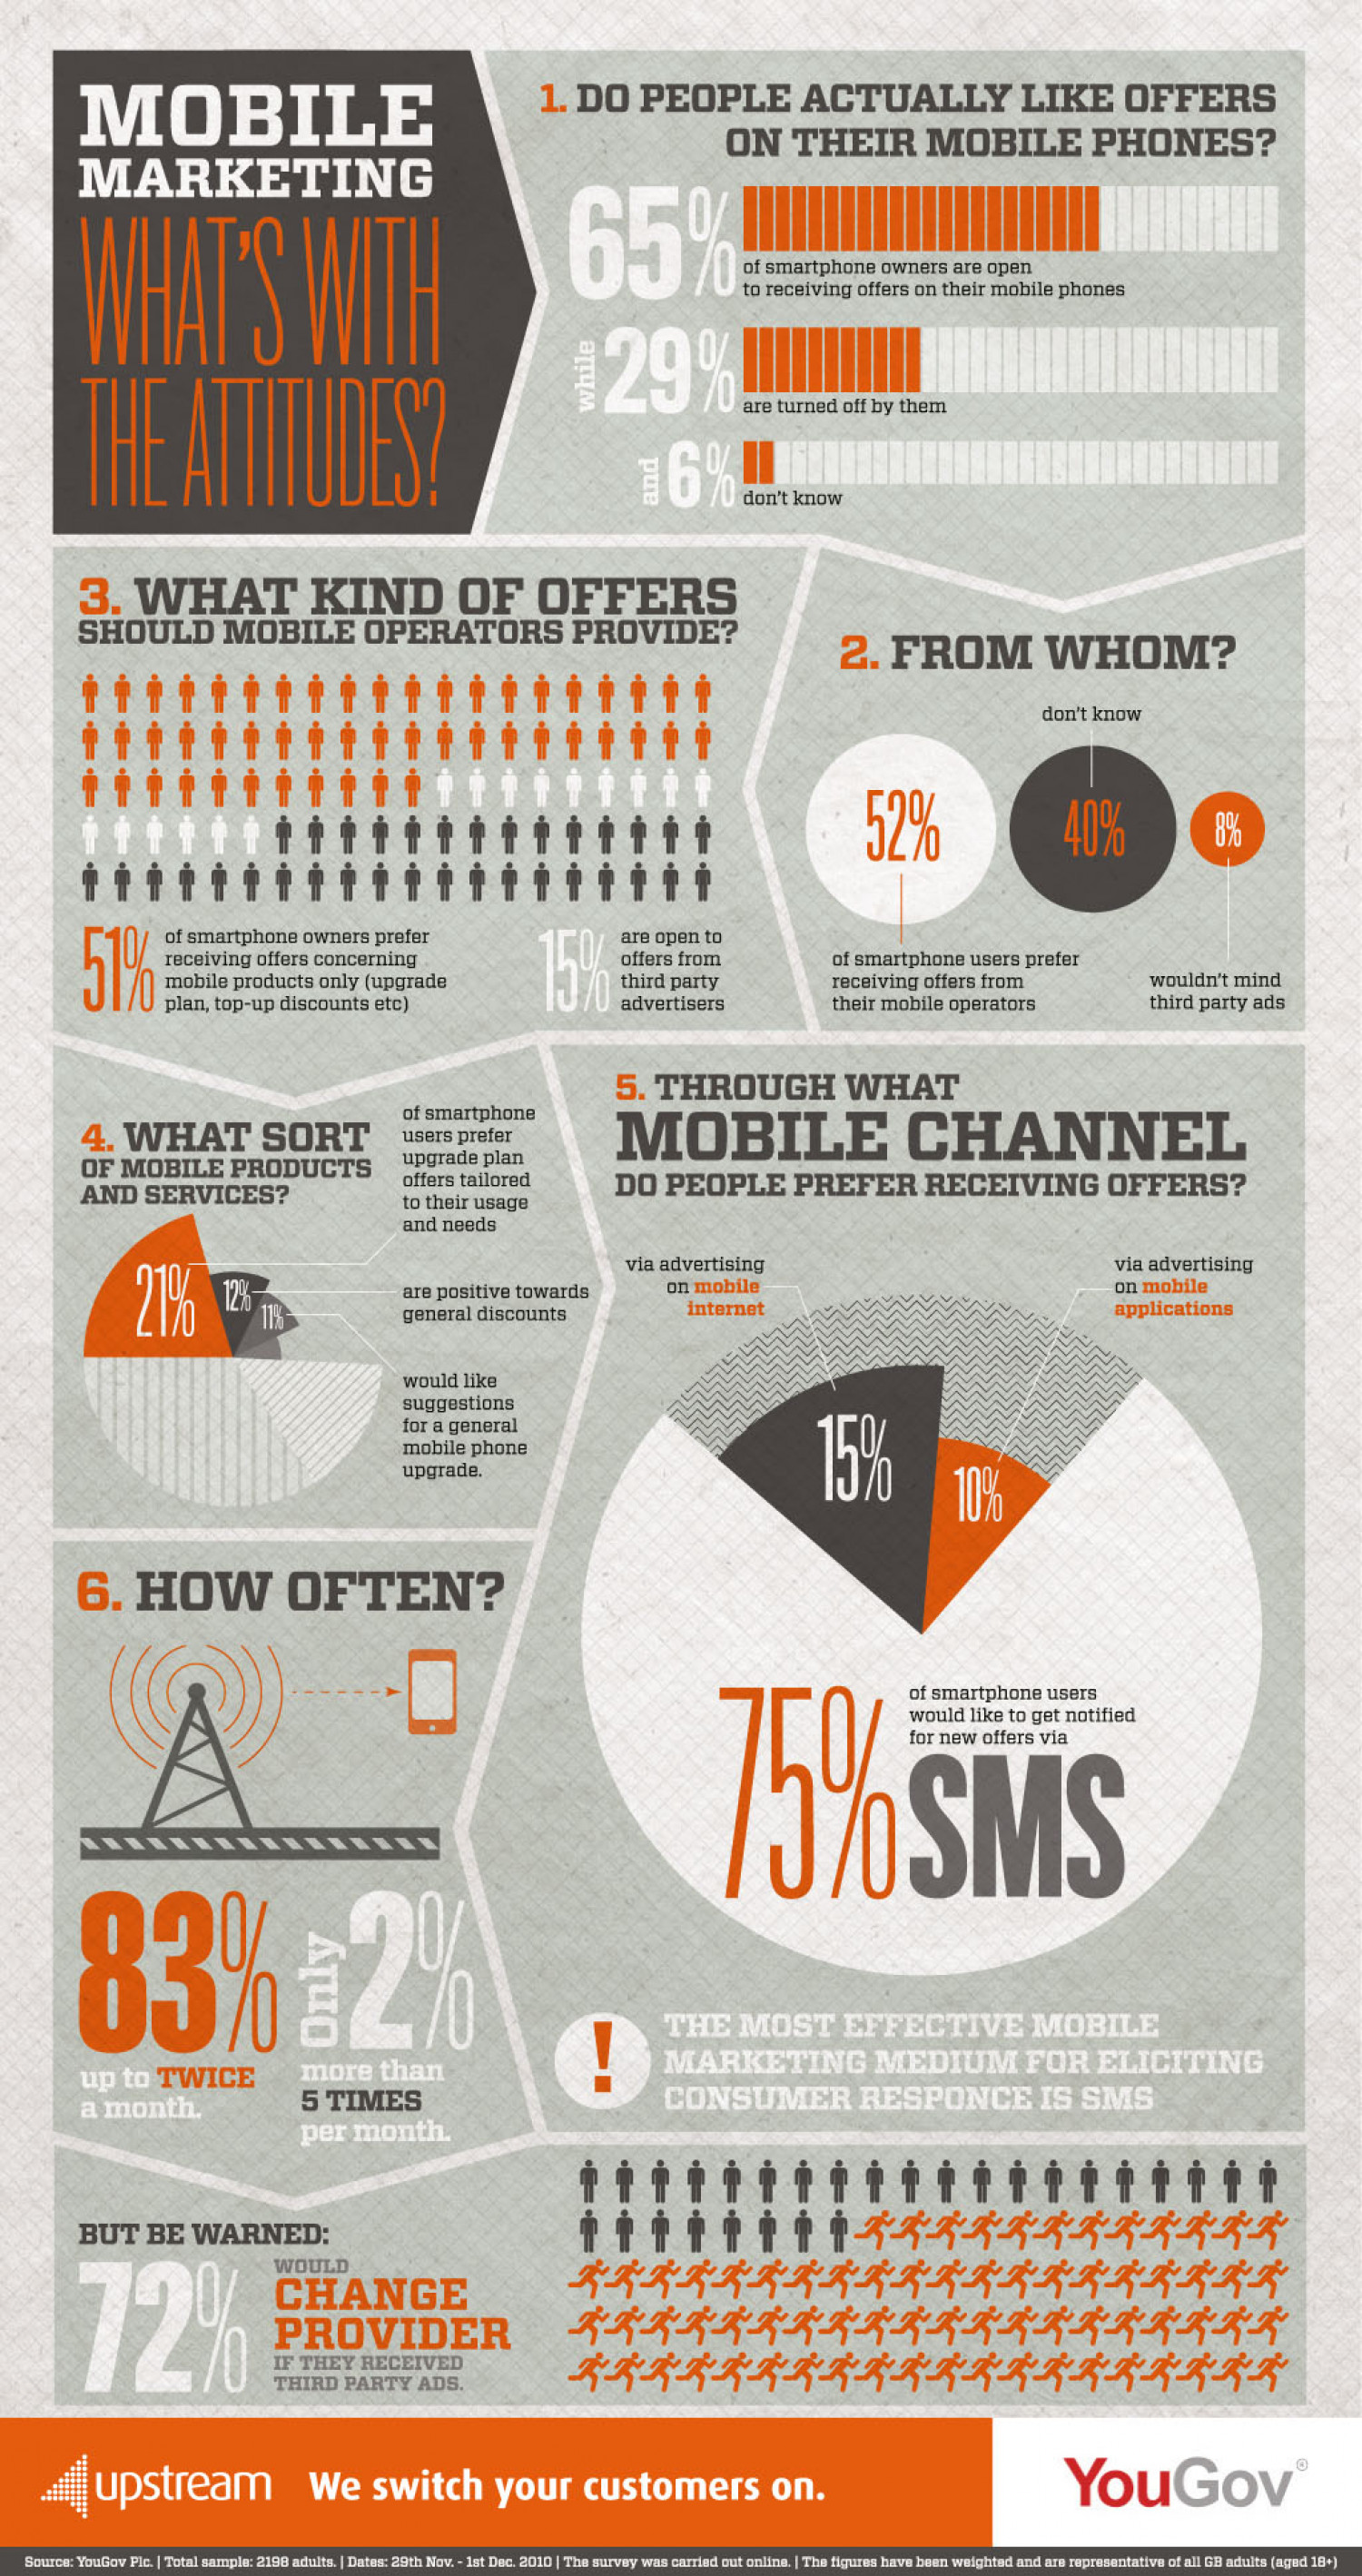 Mobile Marketing: What's With The Attitudes? Infographic